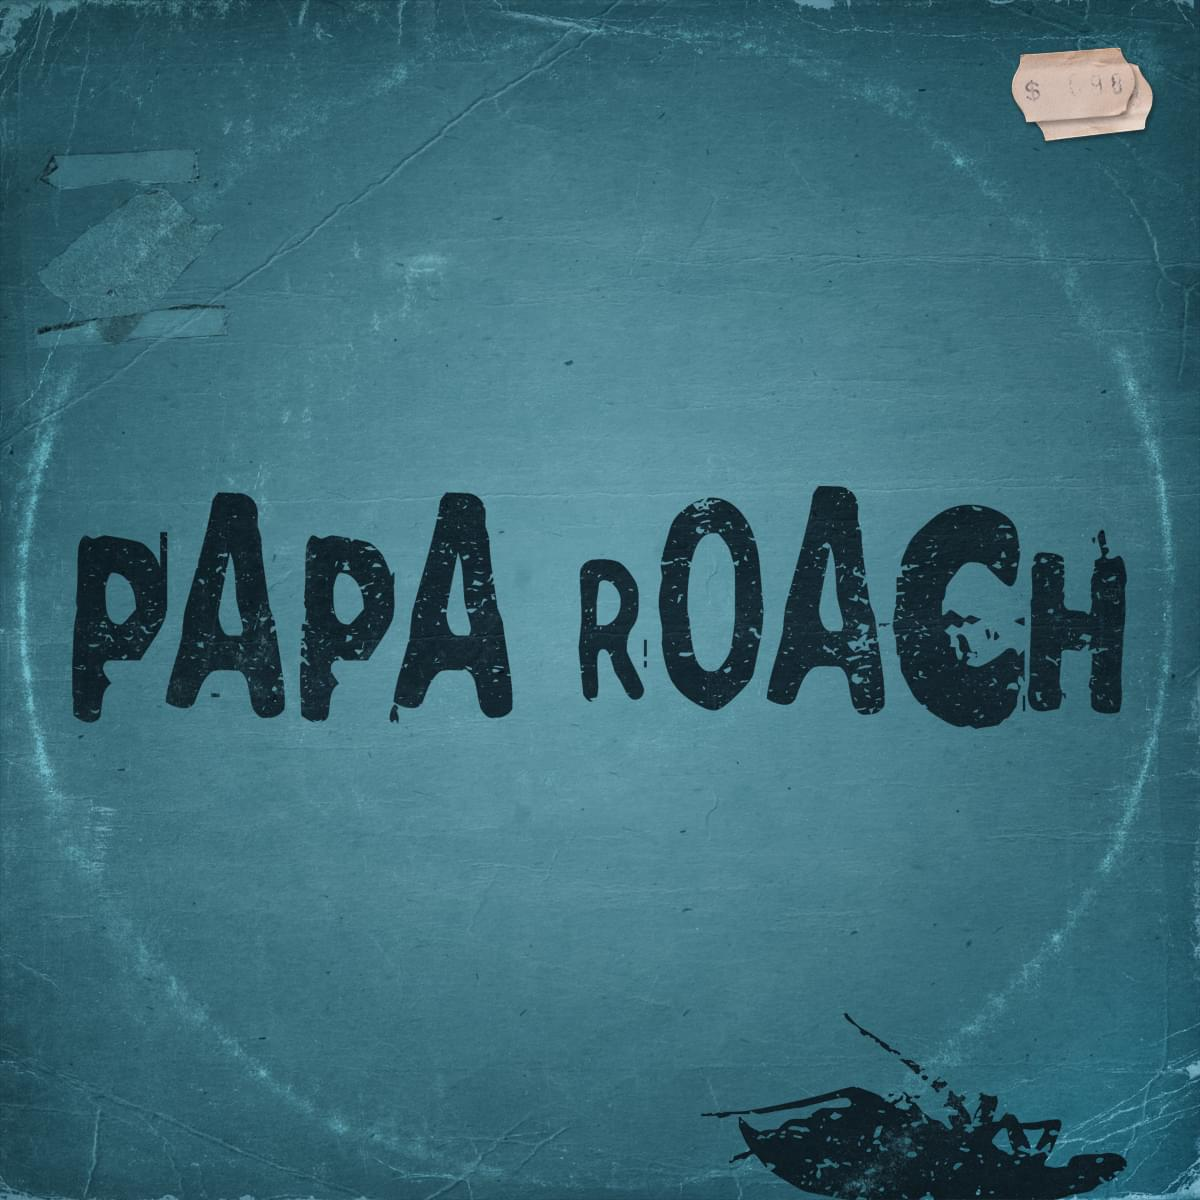 Win The New Papa Roach Album GREATEST HITS VOL. 2 - THE BETTER NOISE YEARS